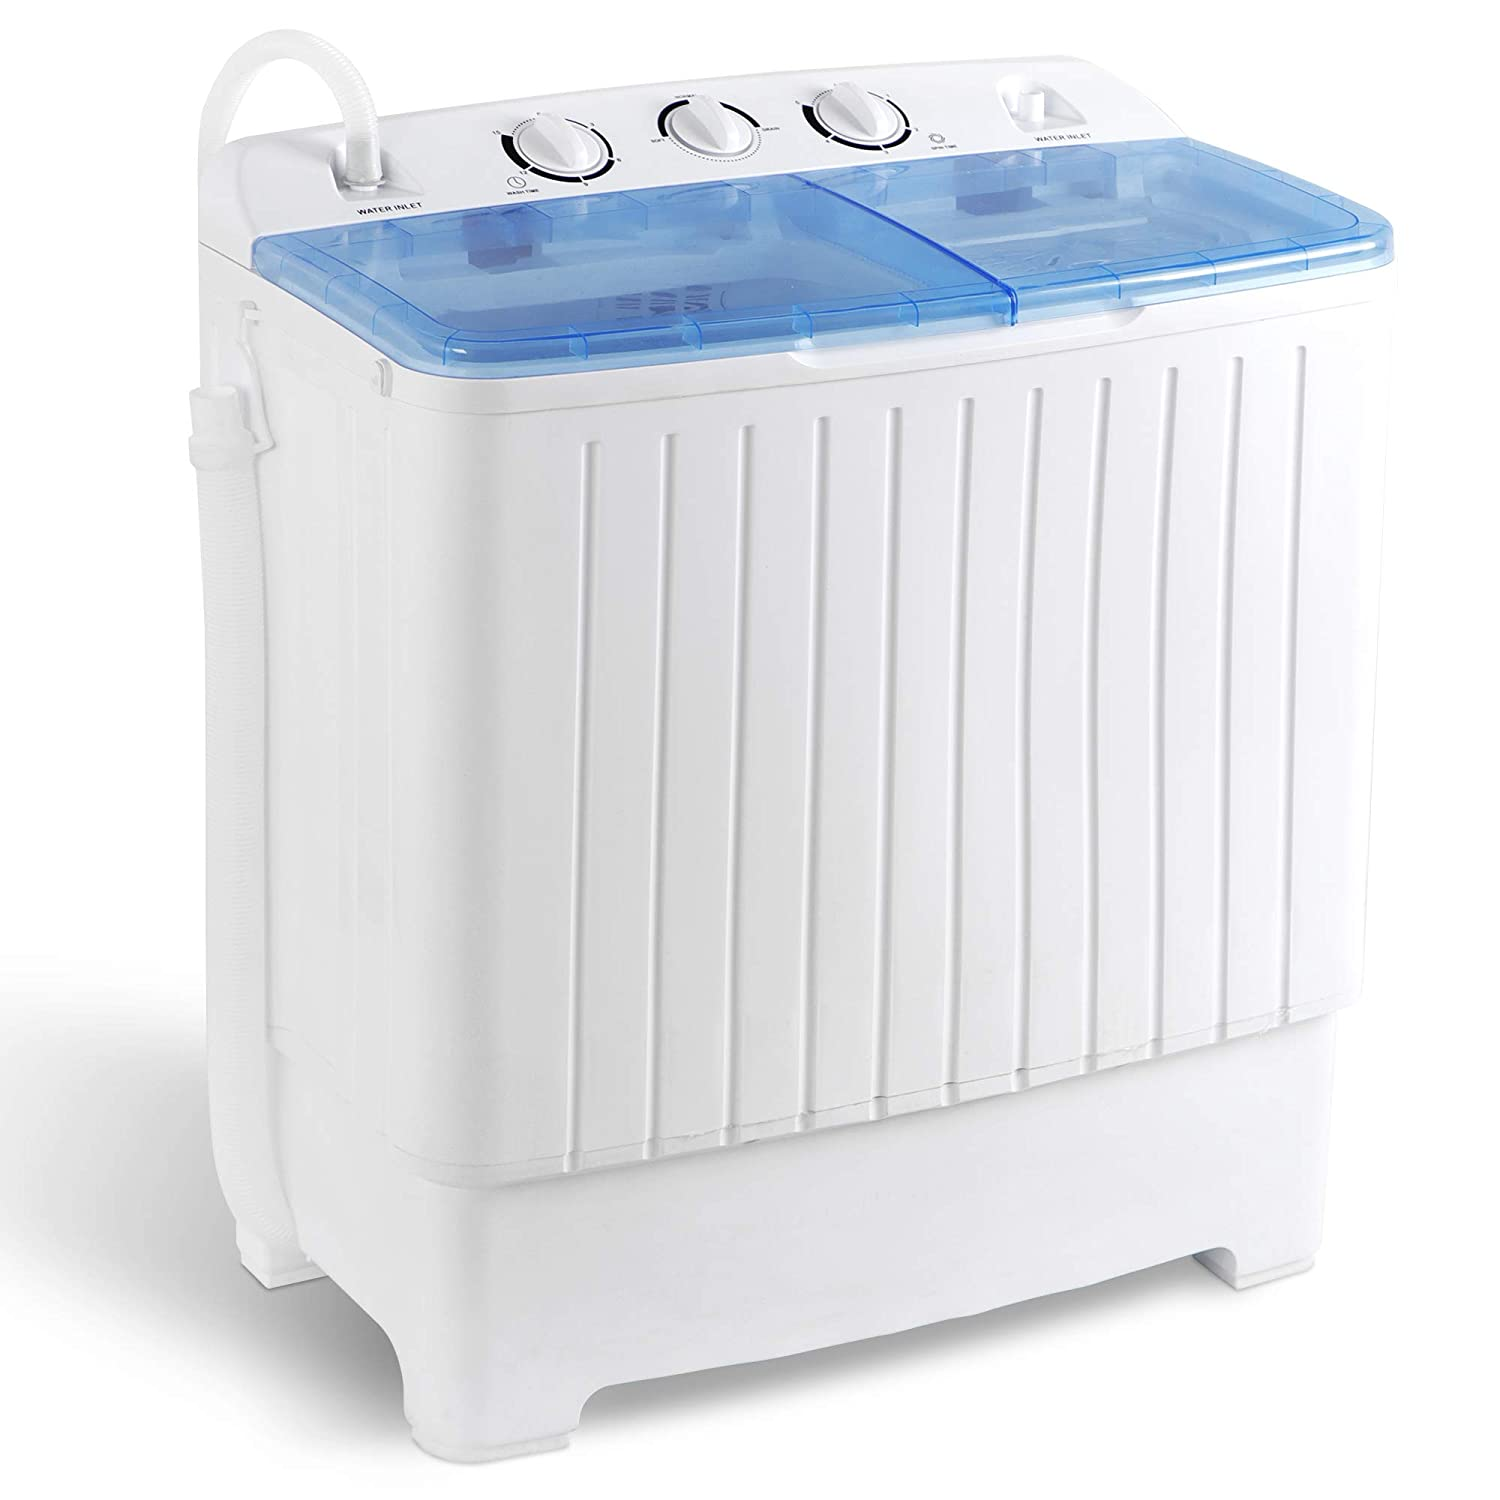 SUPER DEAL 2IN1 Mini Compact Twin Tub Washing Machine 17.6lbs Washer + Spinner Combo, with Timer Control, Drain Hose, Inlet Water Hose and Extra Long Cord